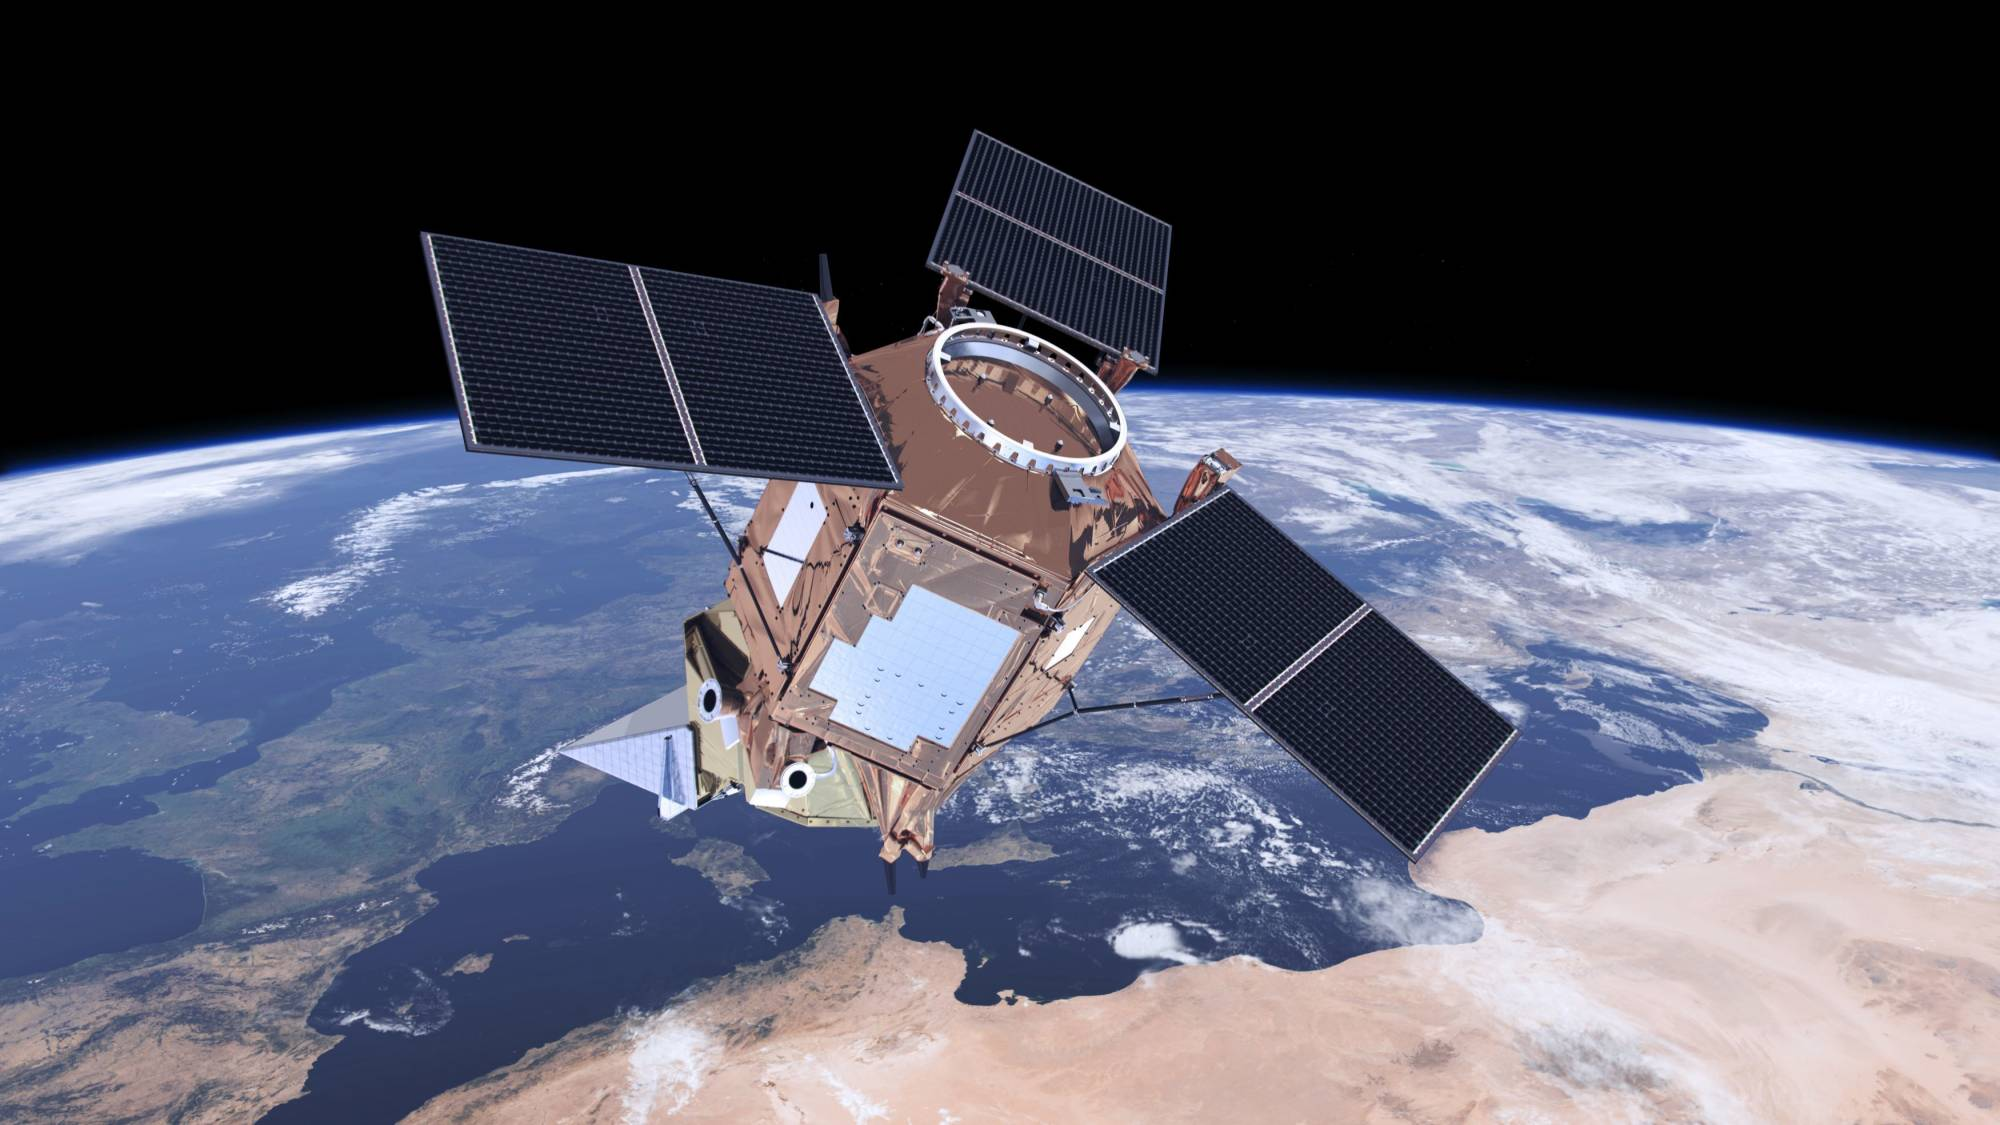 The undated artist rendering provided by ESa shows the Sentinel-5P satellite which is the first Copernicus mission dedicated to monitoring our atmosphere. It carries the Tropomi instrument to map a multitude of trace gases and aerosols that affect the air we breathe and our climate. (ESA via AP)